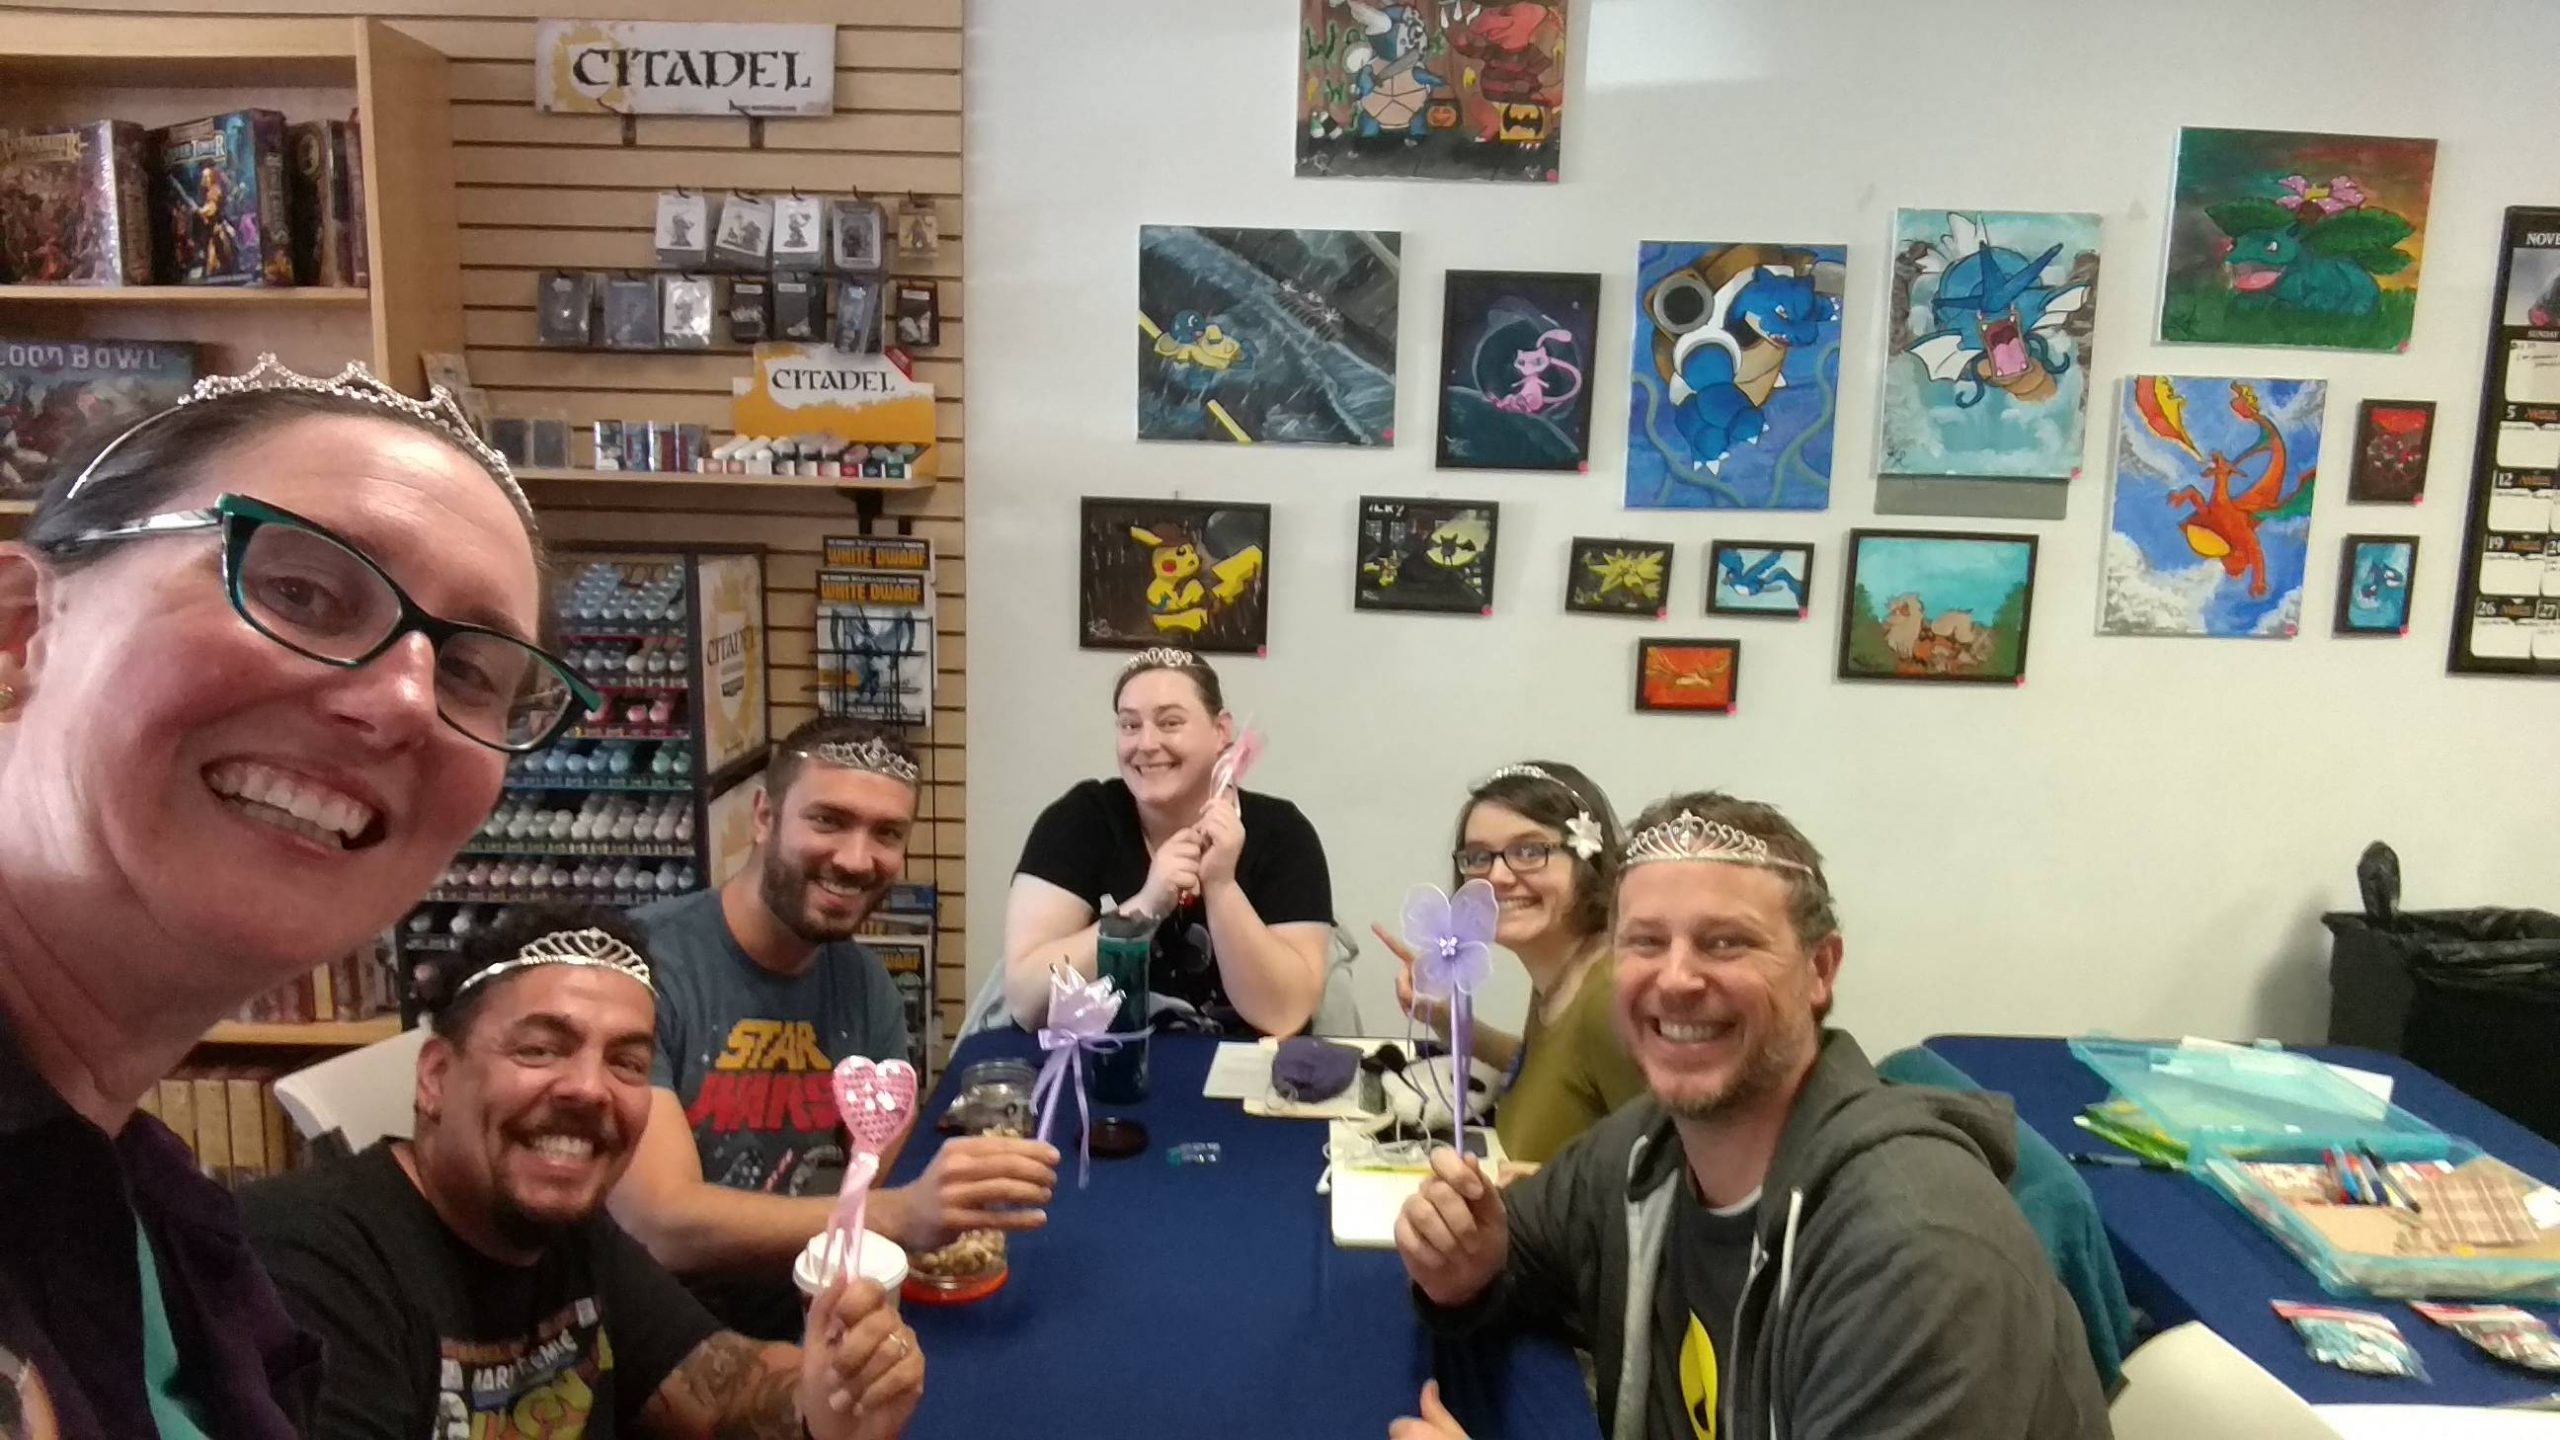 Everyone is excited about their wand and tiara props! When players are a good fit with one another it is easier to have a good time! Understanding what you want from a game group is an important first step towards having a good experience.